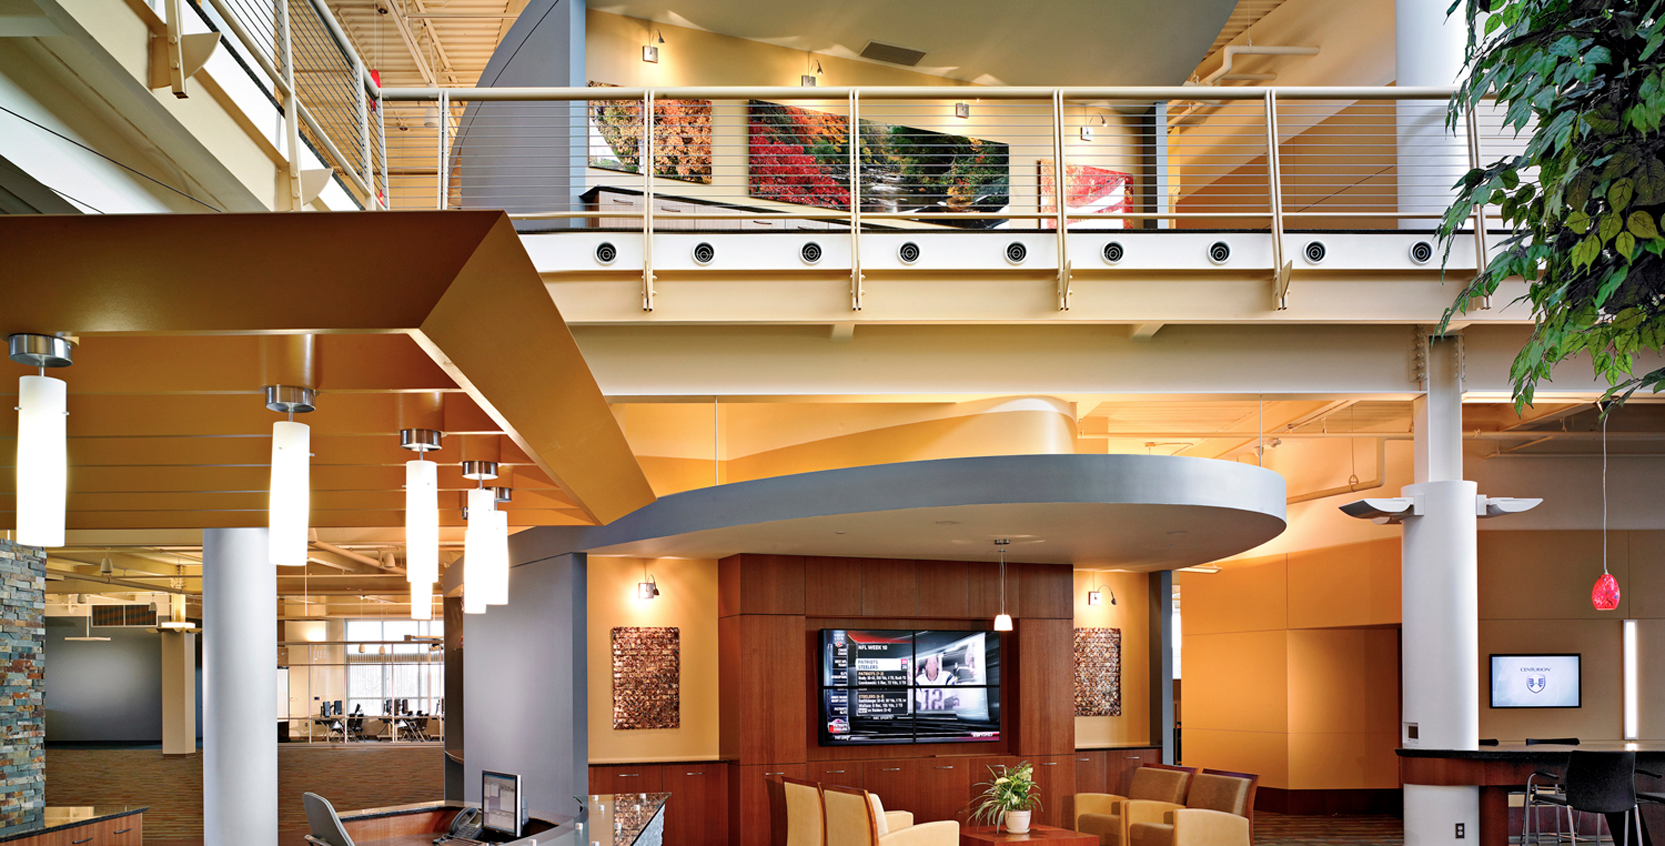 Centurion-Medical-Products-Corporate-HQ-Lobby-1665x845